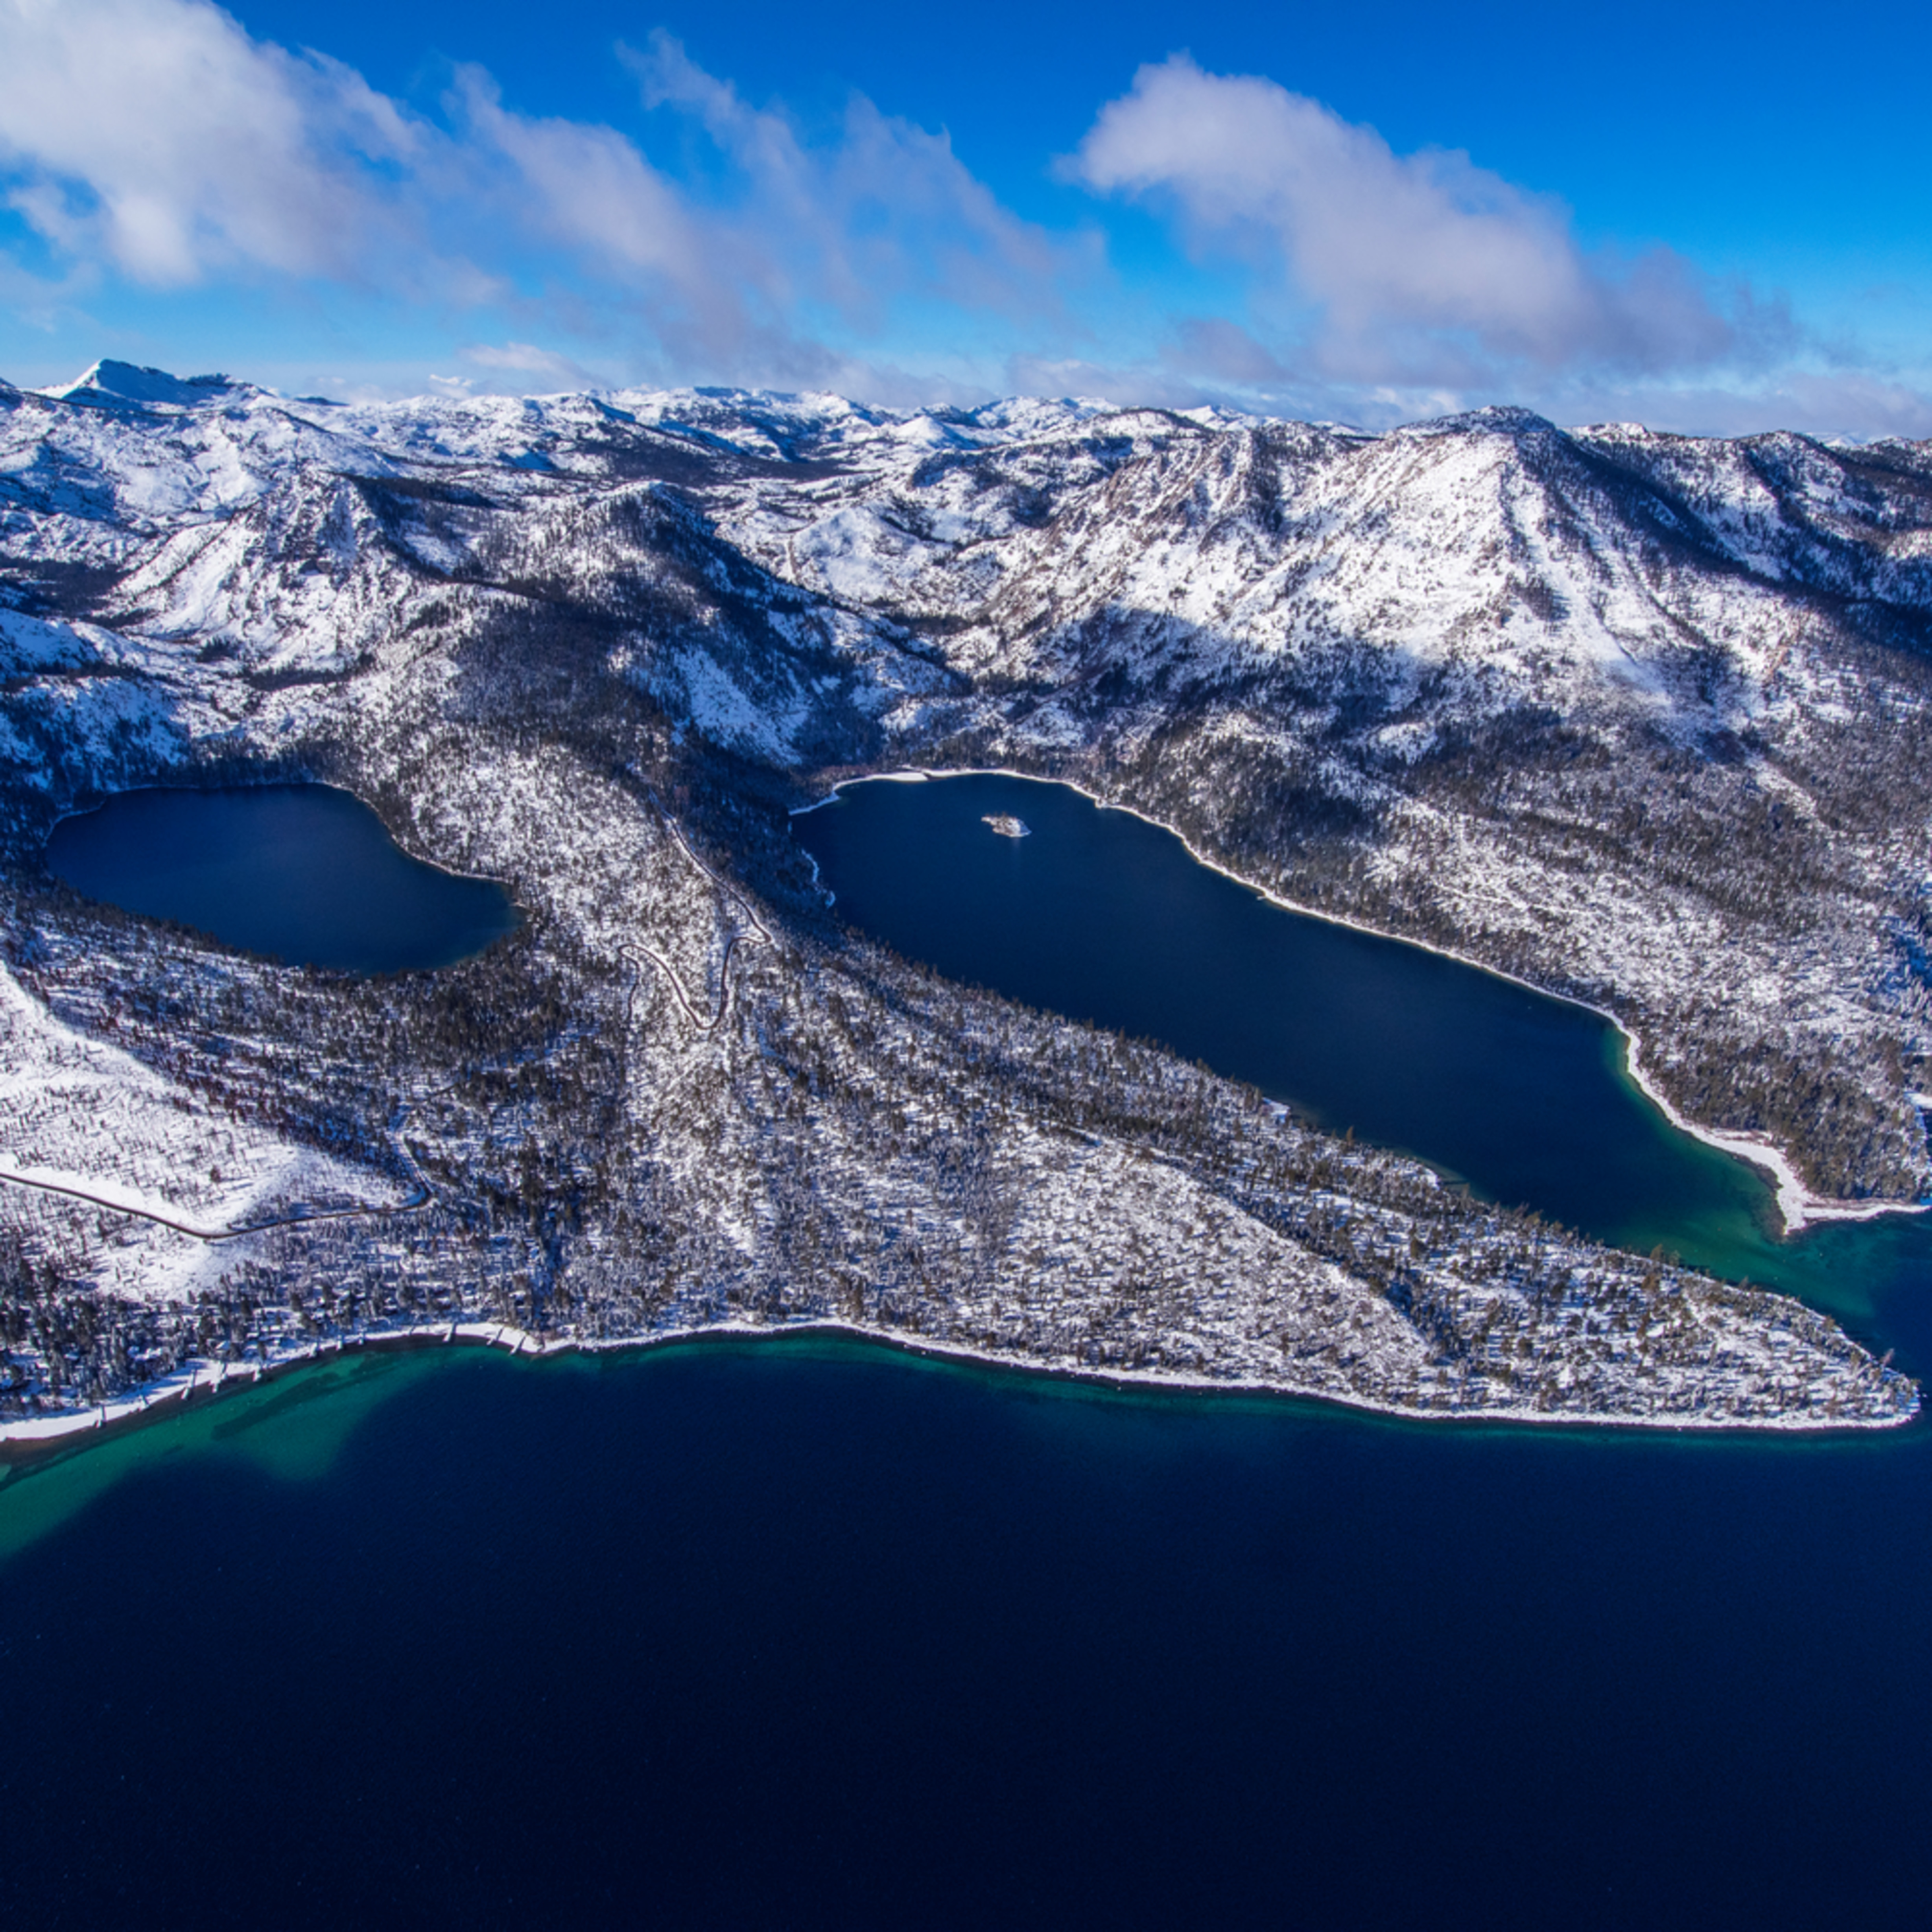 Emerald bay winter aerial h0ji4w